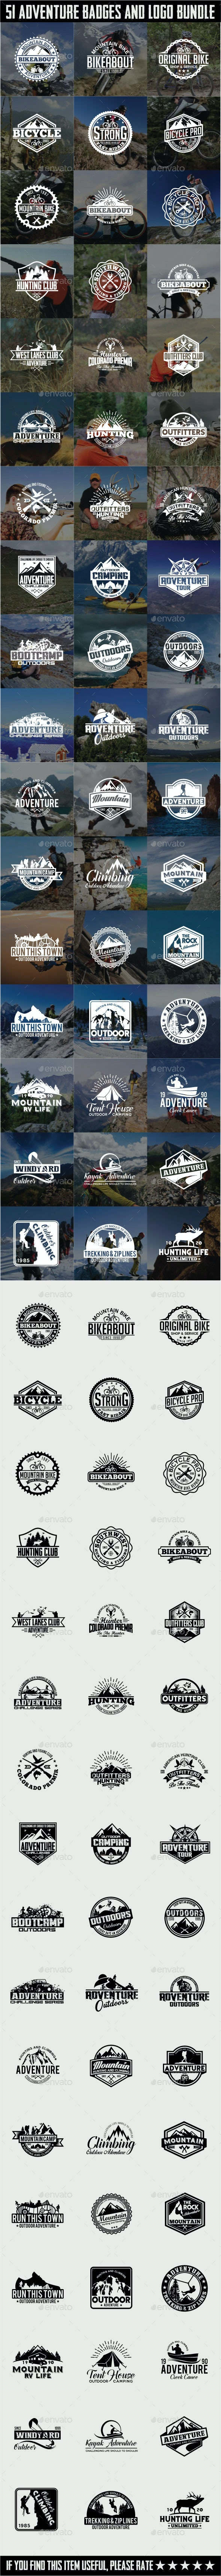 51 Adventure Badges and Logos Bundle - Badges & Stickers Web Elements